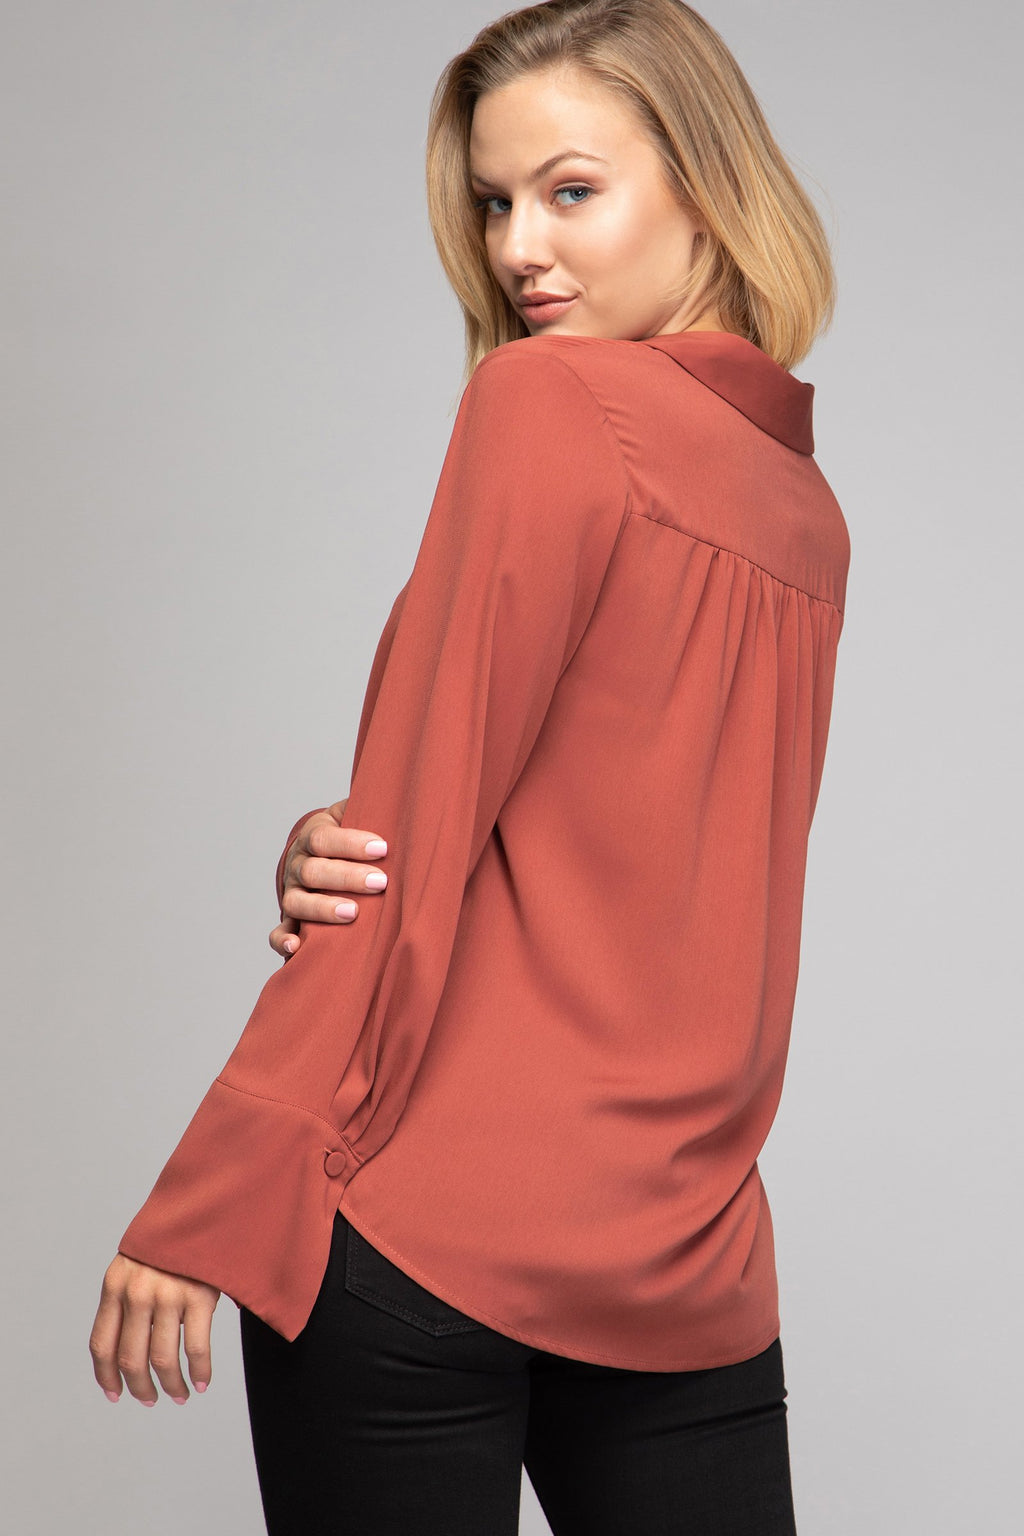 LAST CALL SIZE M | Collared Long Sleeve Blouse with Flare Sleeves in Blush